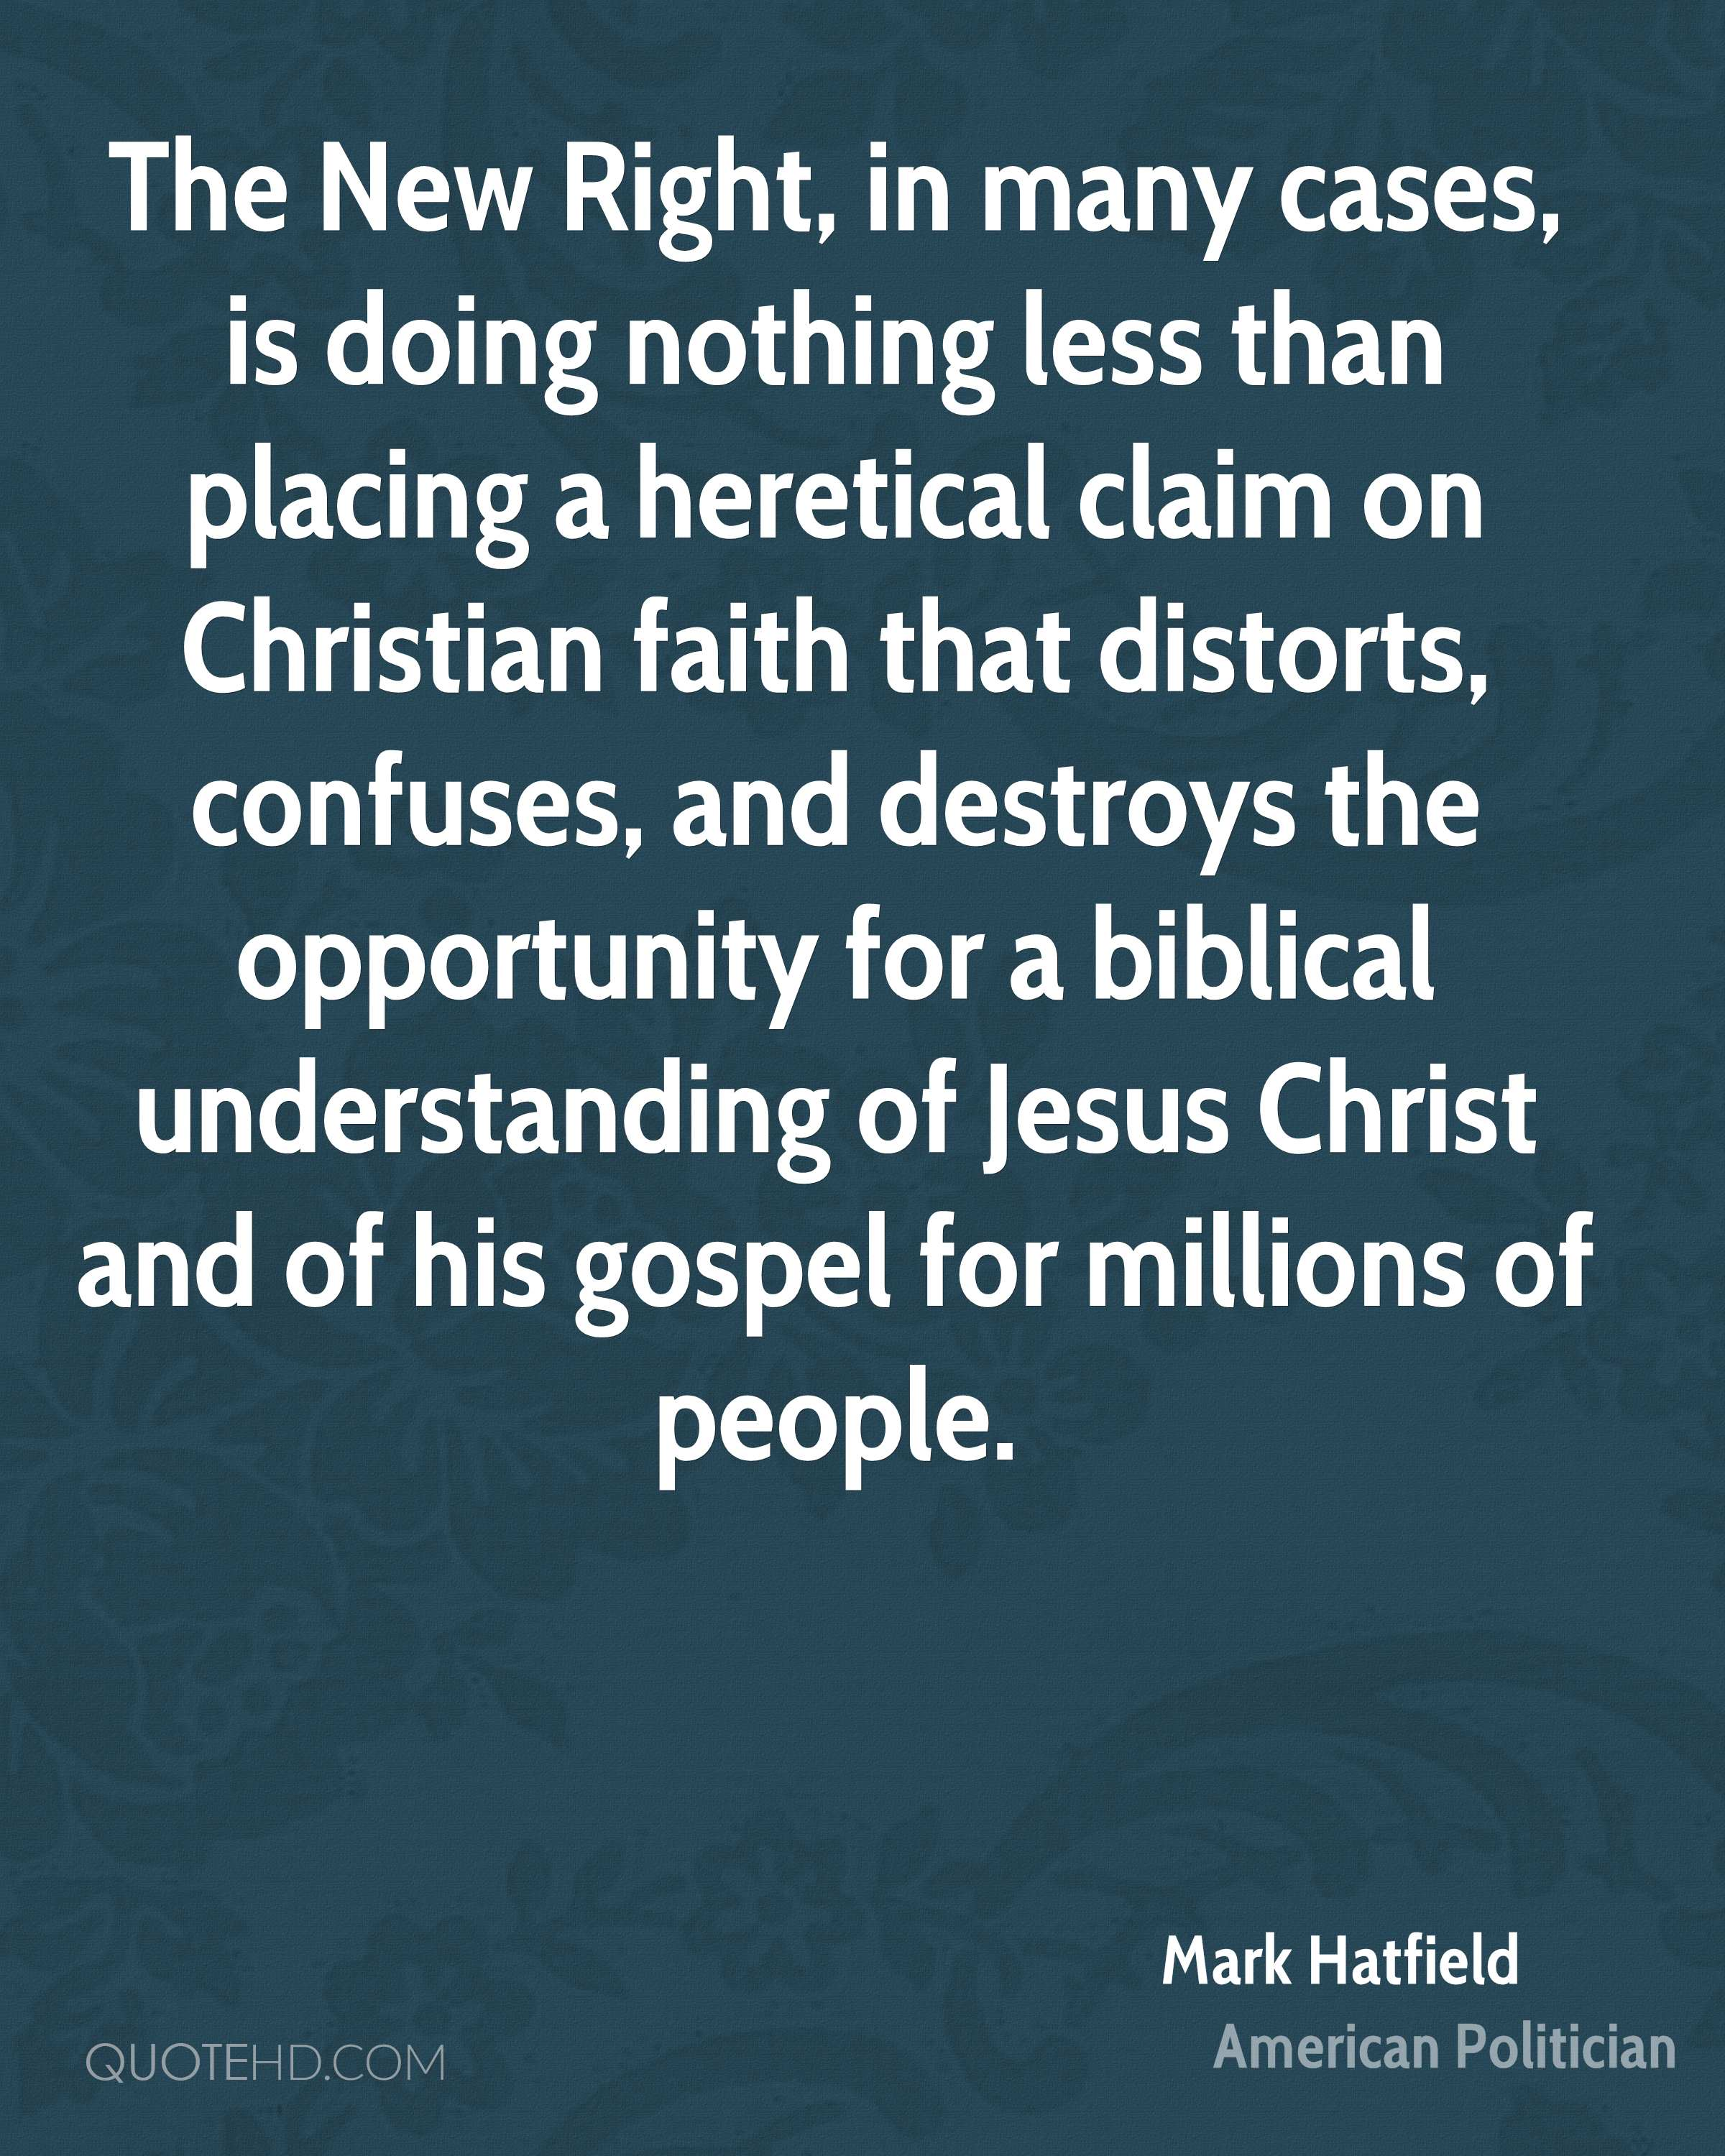 The New Right, in many cases, is doing nothing less than placing a heretical claim on Christian faith that distorts, confuses, and destroys the opportunity for a biblical understanding of Jesus Christ and of his gospel for millions of people.